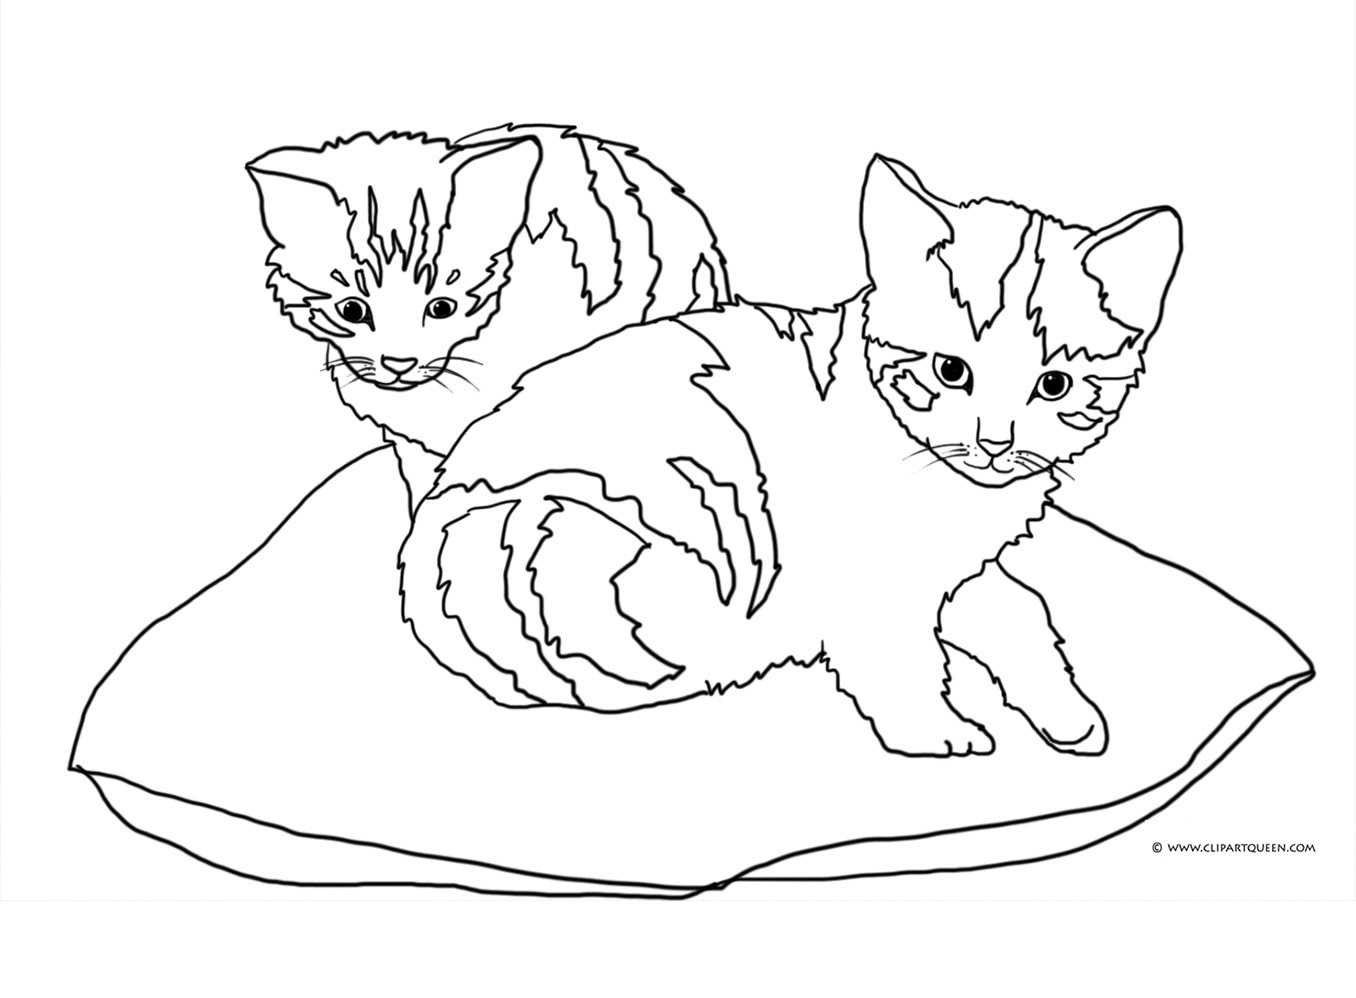 Cat Black And White Drawing at GetDrawings | Free download